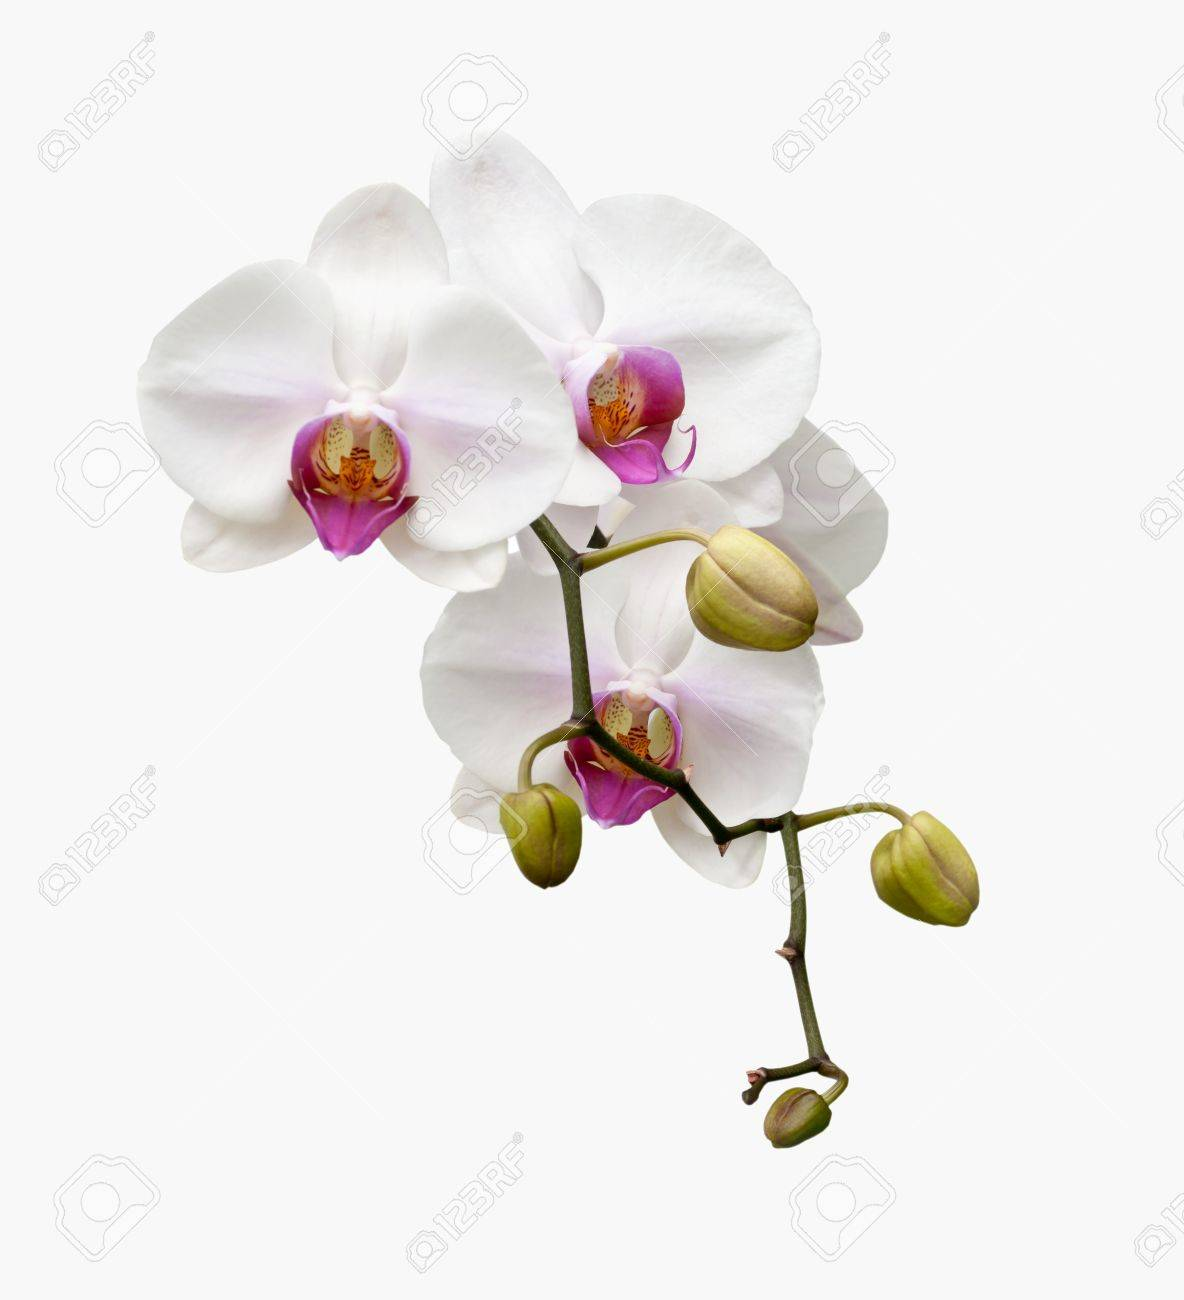 Beautiful white orchid blooming on the white background - 14736788